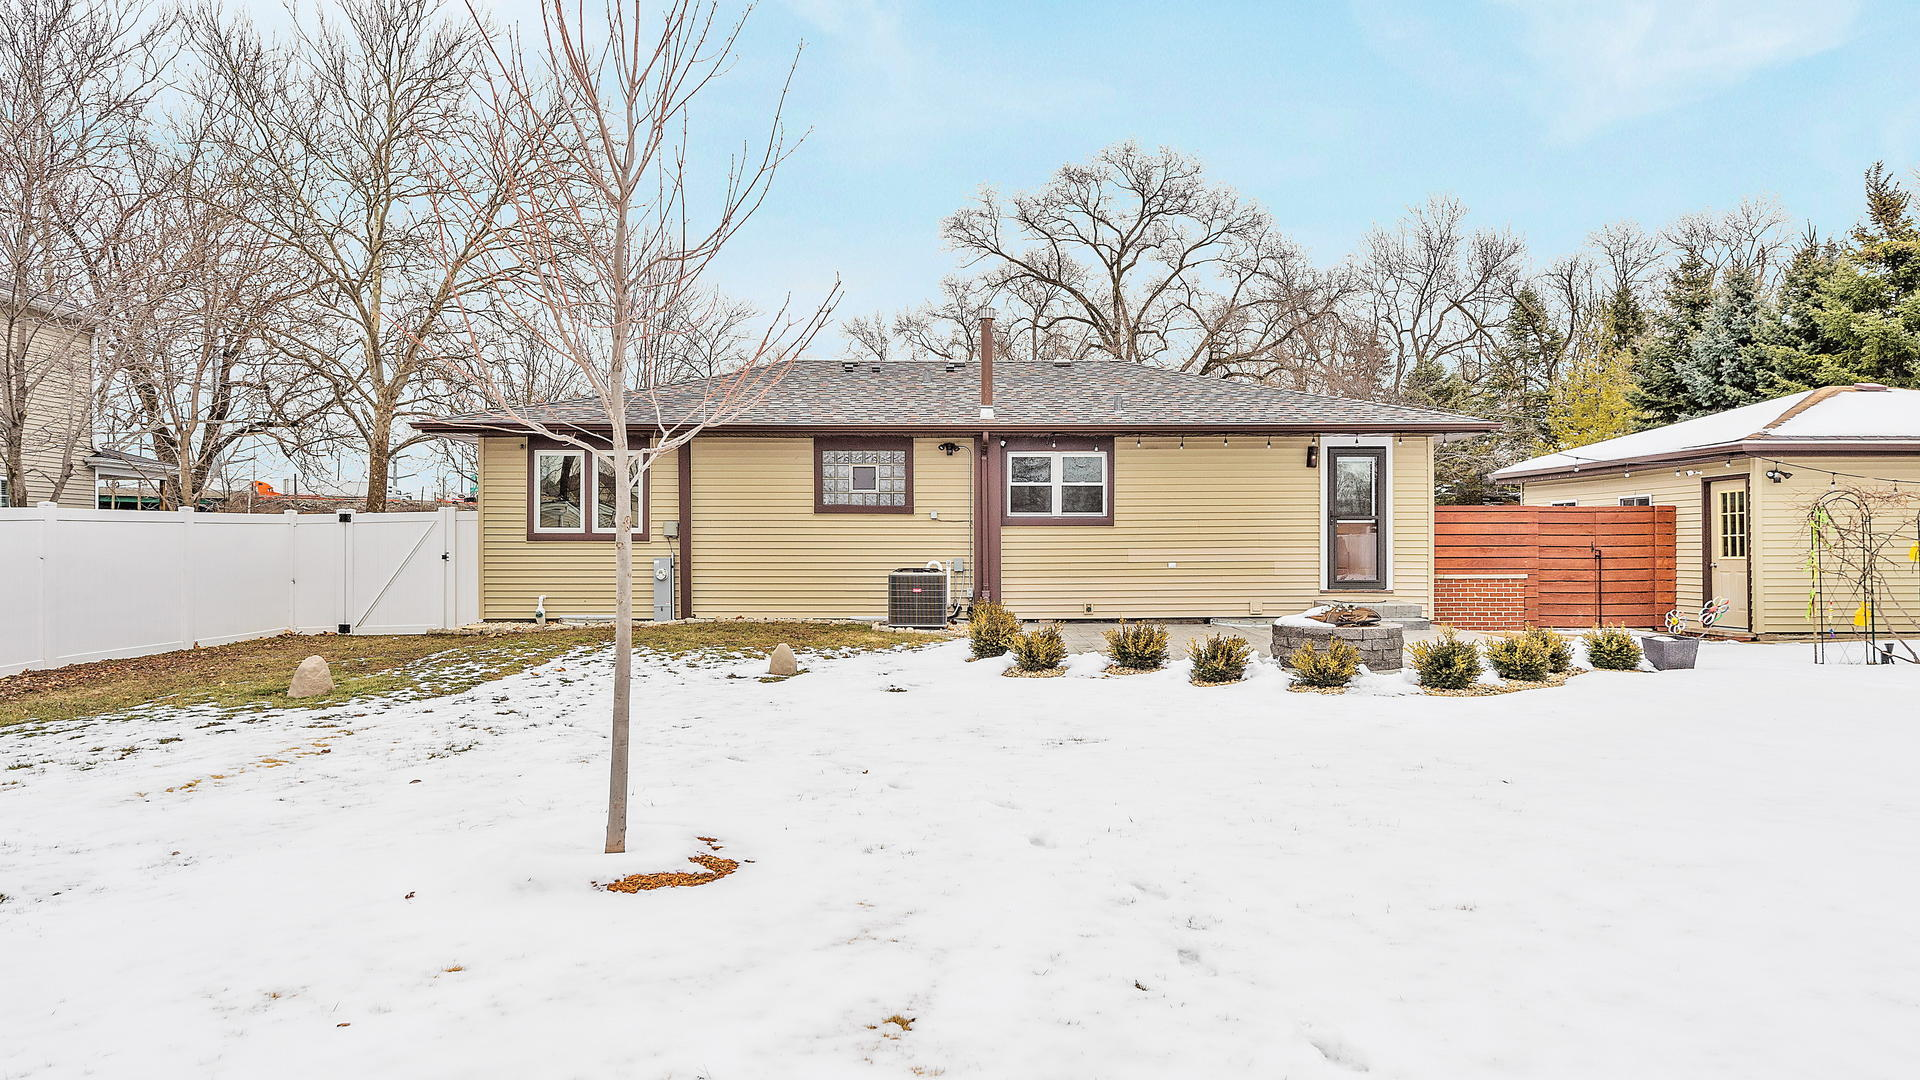 217 West Rust, Willow Springs, Illinois, 60480